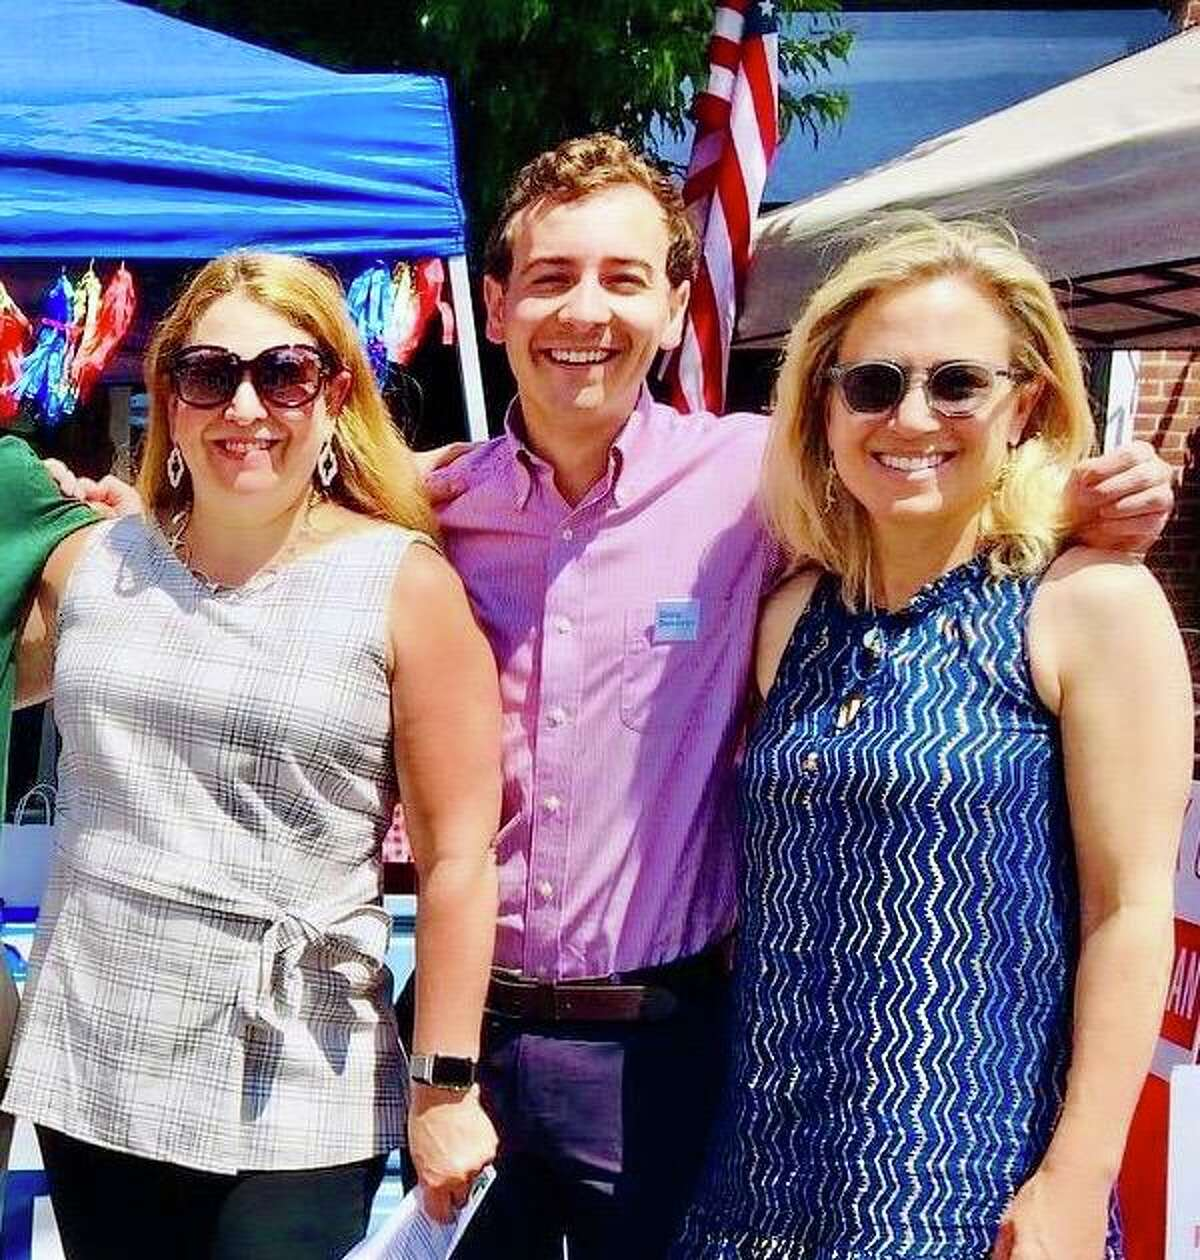 Democrats seeking new terms representing New Canaan in the state legislature will appear at both a meet and greet outside Town Hall and on a virtual barbecue between 3 and 5 p.m. Sunday, Sept. 13. From left are: State Rep. Lucy Dathan (142nd District: Norwalk and New Canaan), state Sen. Will Haskell (26th District: New Canaan, Bethel, Redding, Ridgefield, Weston, Wesport and Wilton) and state Sen. Alex Kasser (36th District: Greenwich, New Canaan and Stamford) who will all be outside Town Hall, 77 Main St. Masks are required. There is no charge to attend.